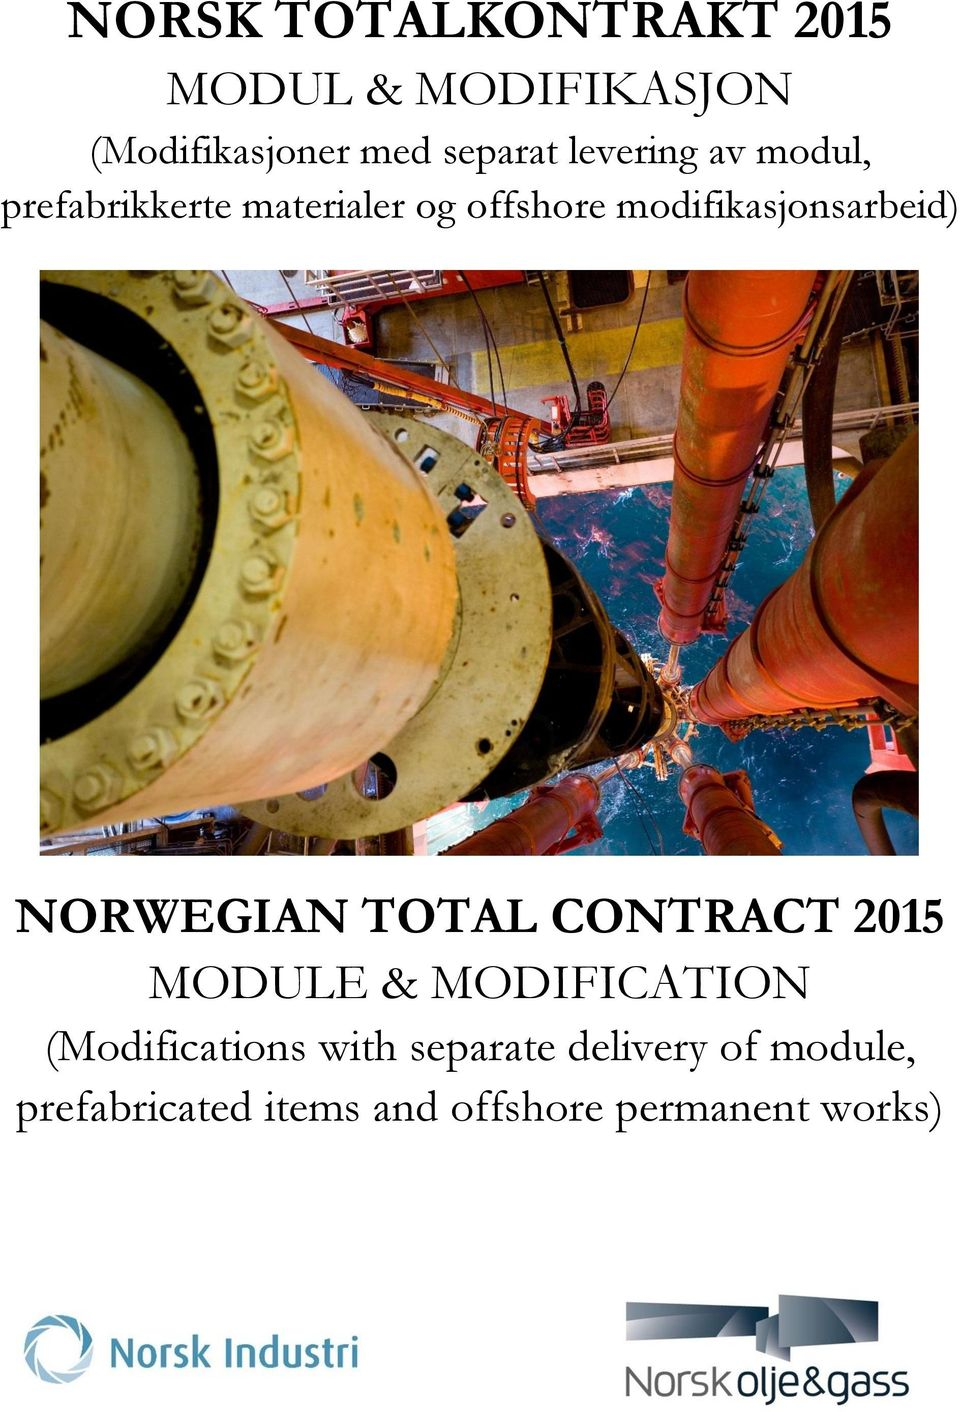 NORWEGIAN TOTAL CONTRACT 2015 MODULE & MODIFICATION